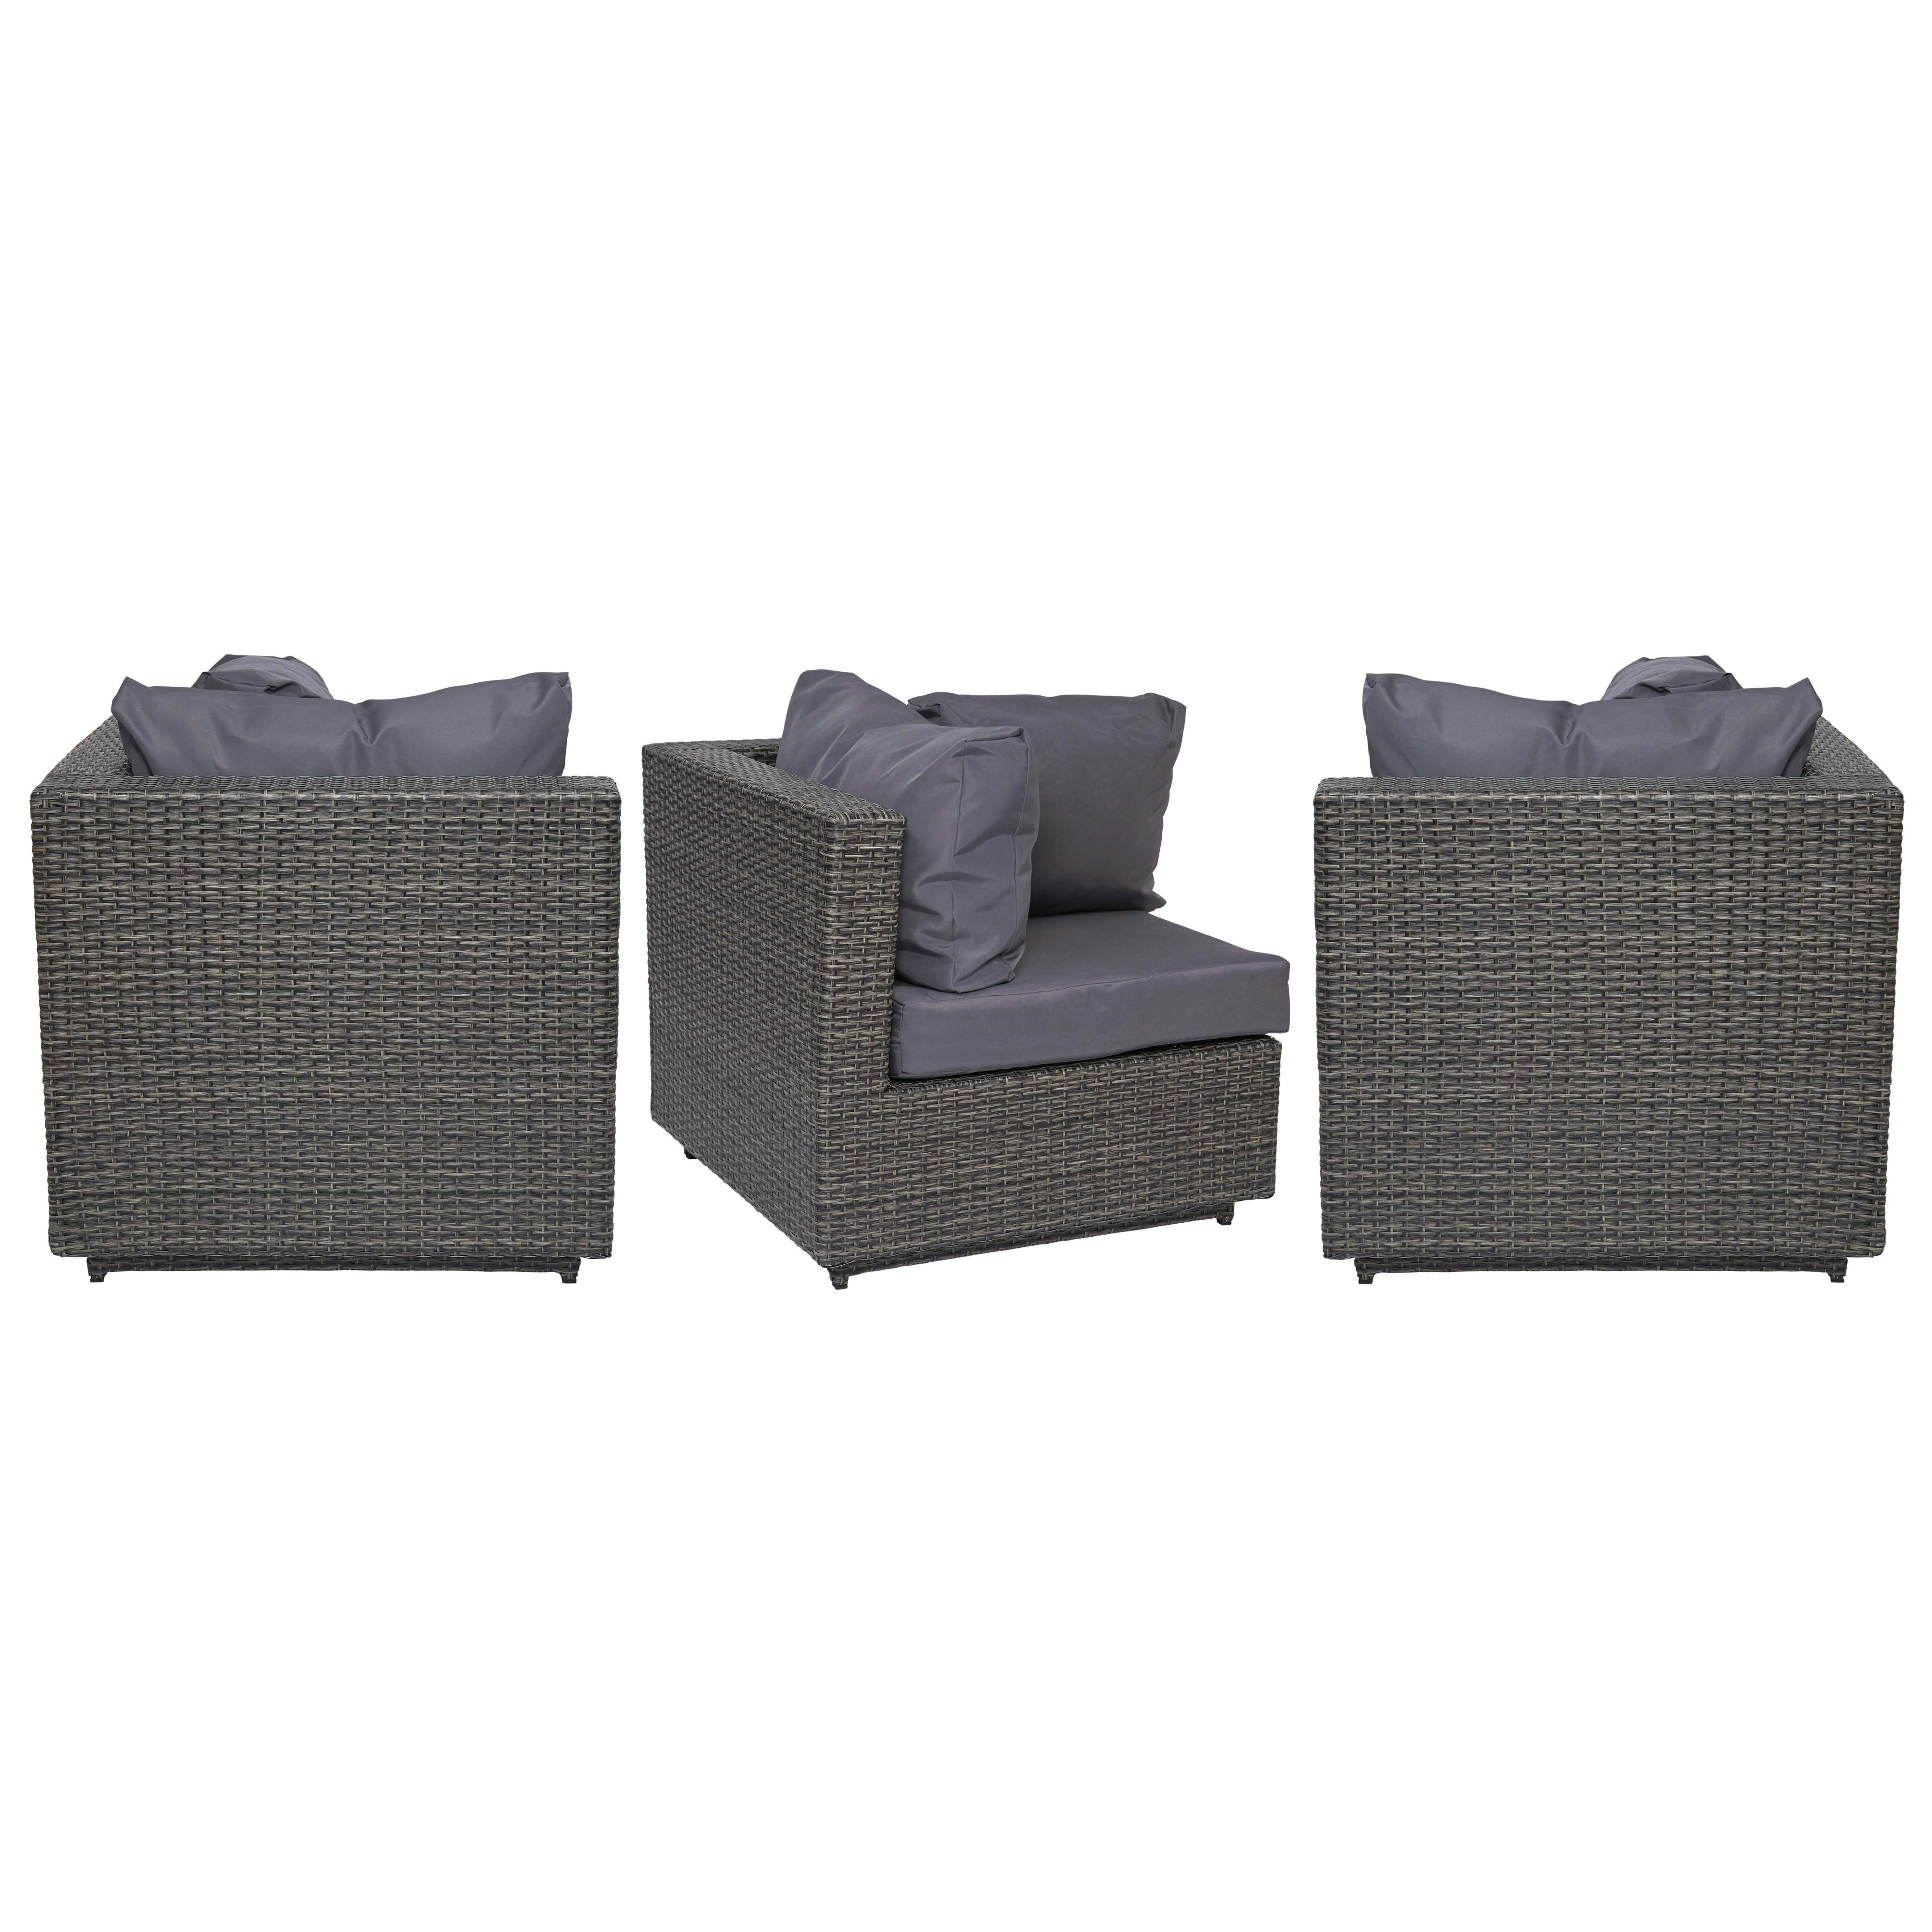 fauteuil de jardin d 39 angle pas cher. Black Bedroom Furniture Sets. Home Design Ideas